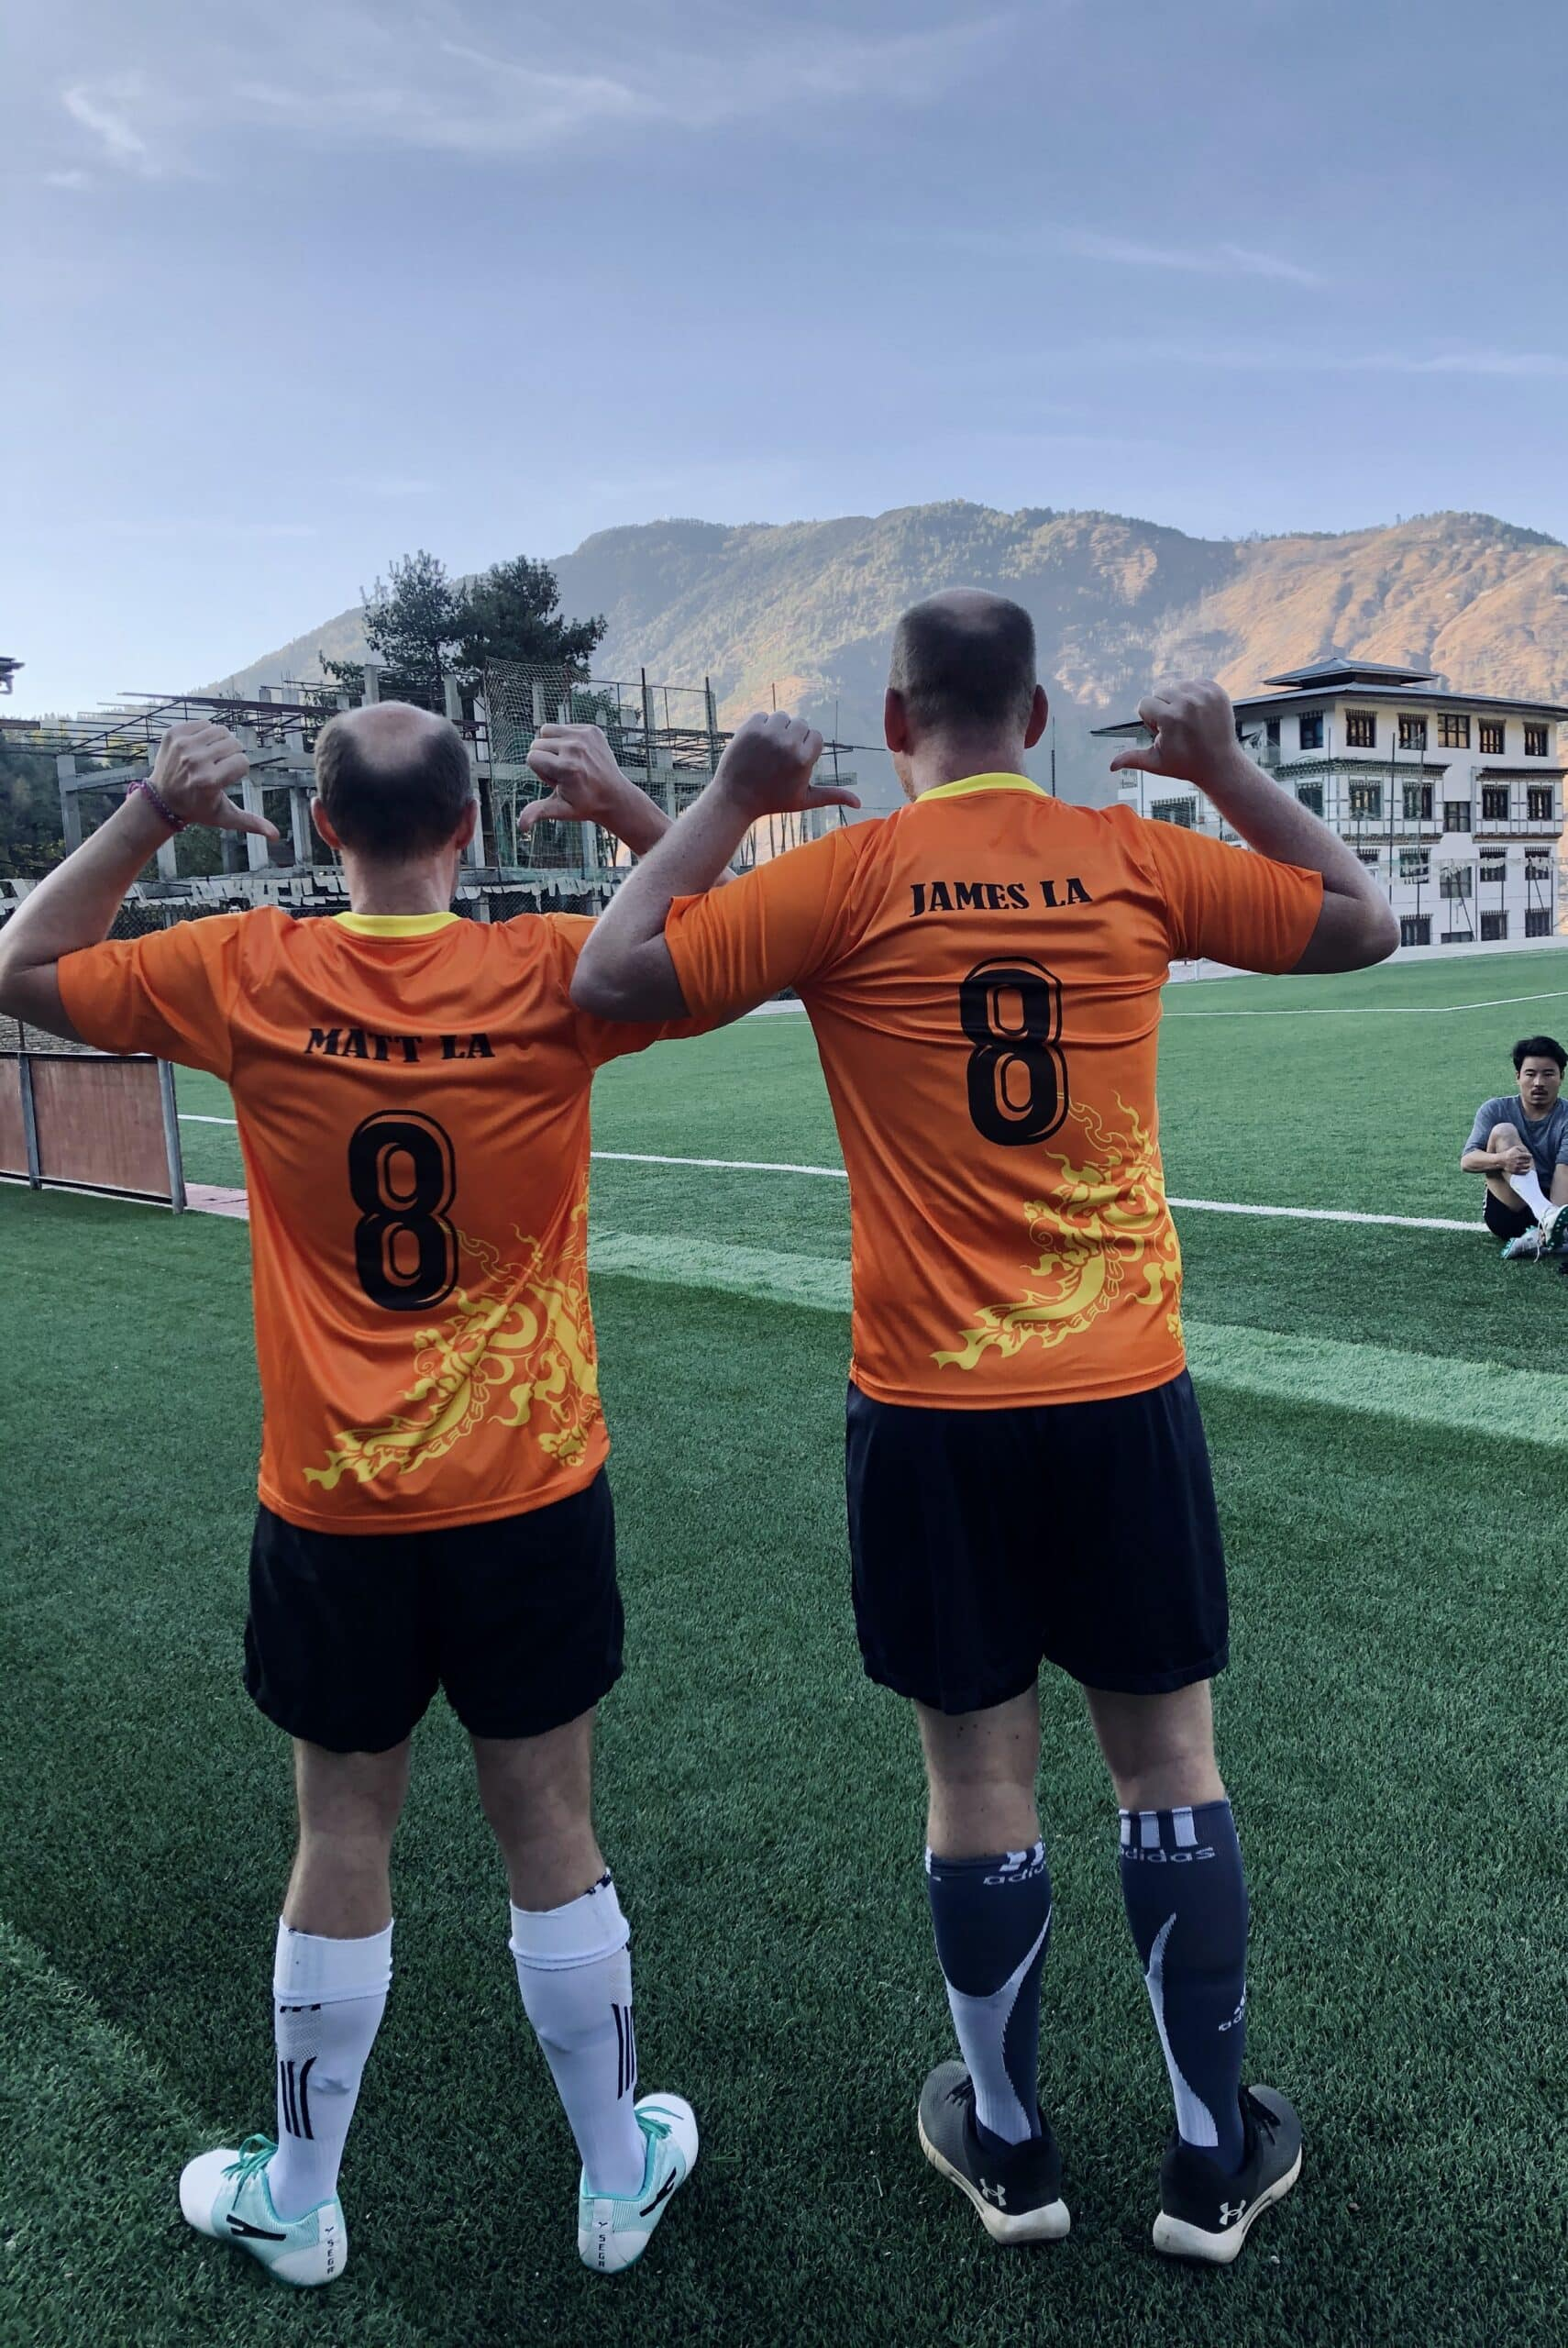 Playing football in Thimphu, the capital city in Bhutan